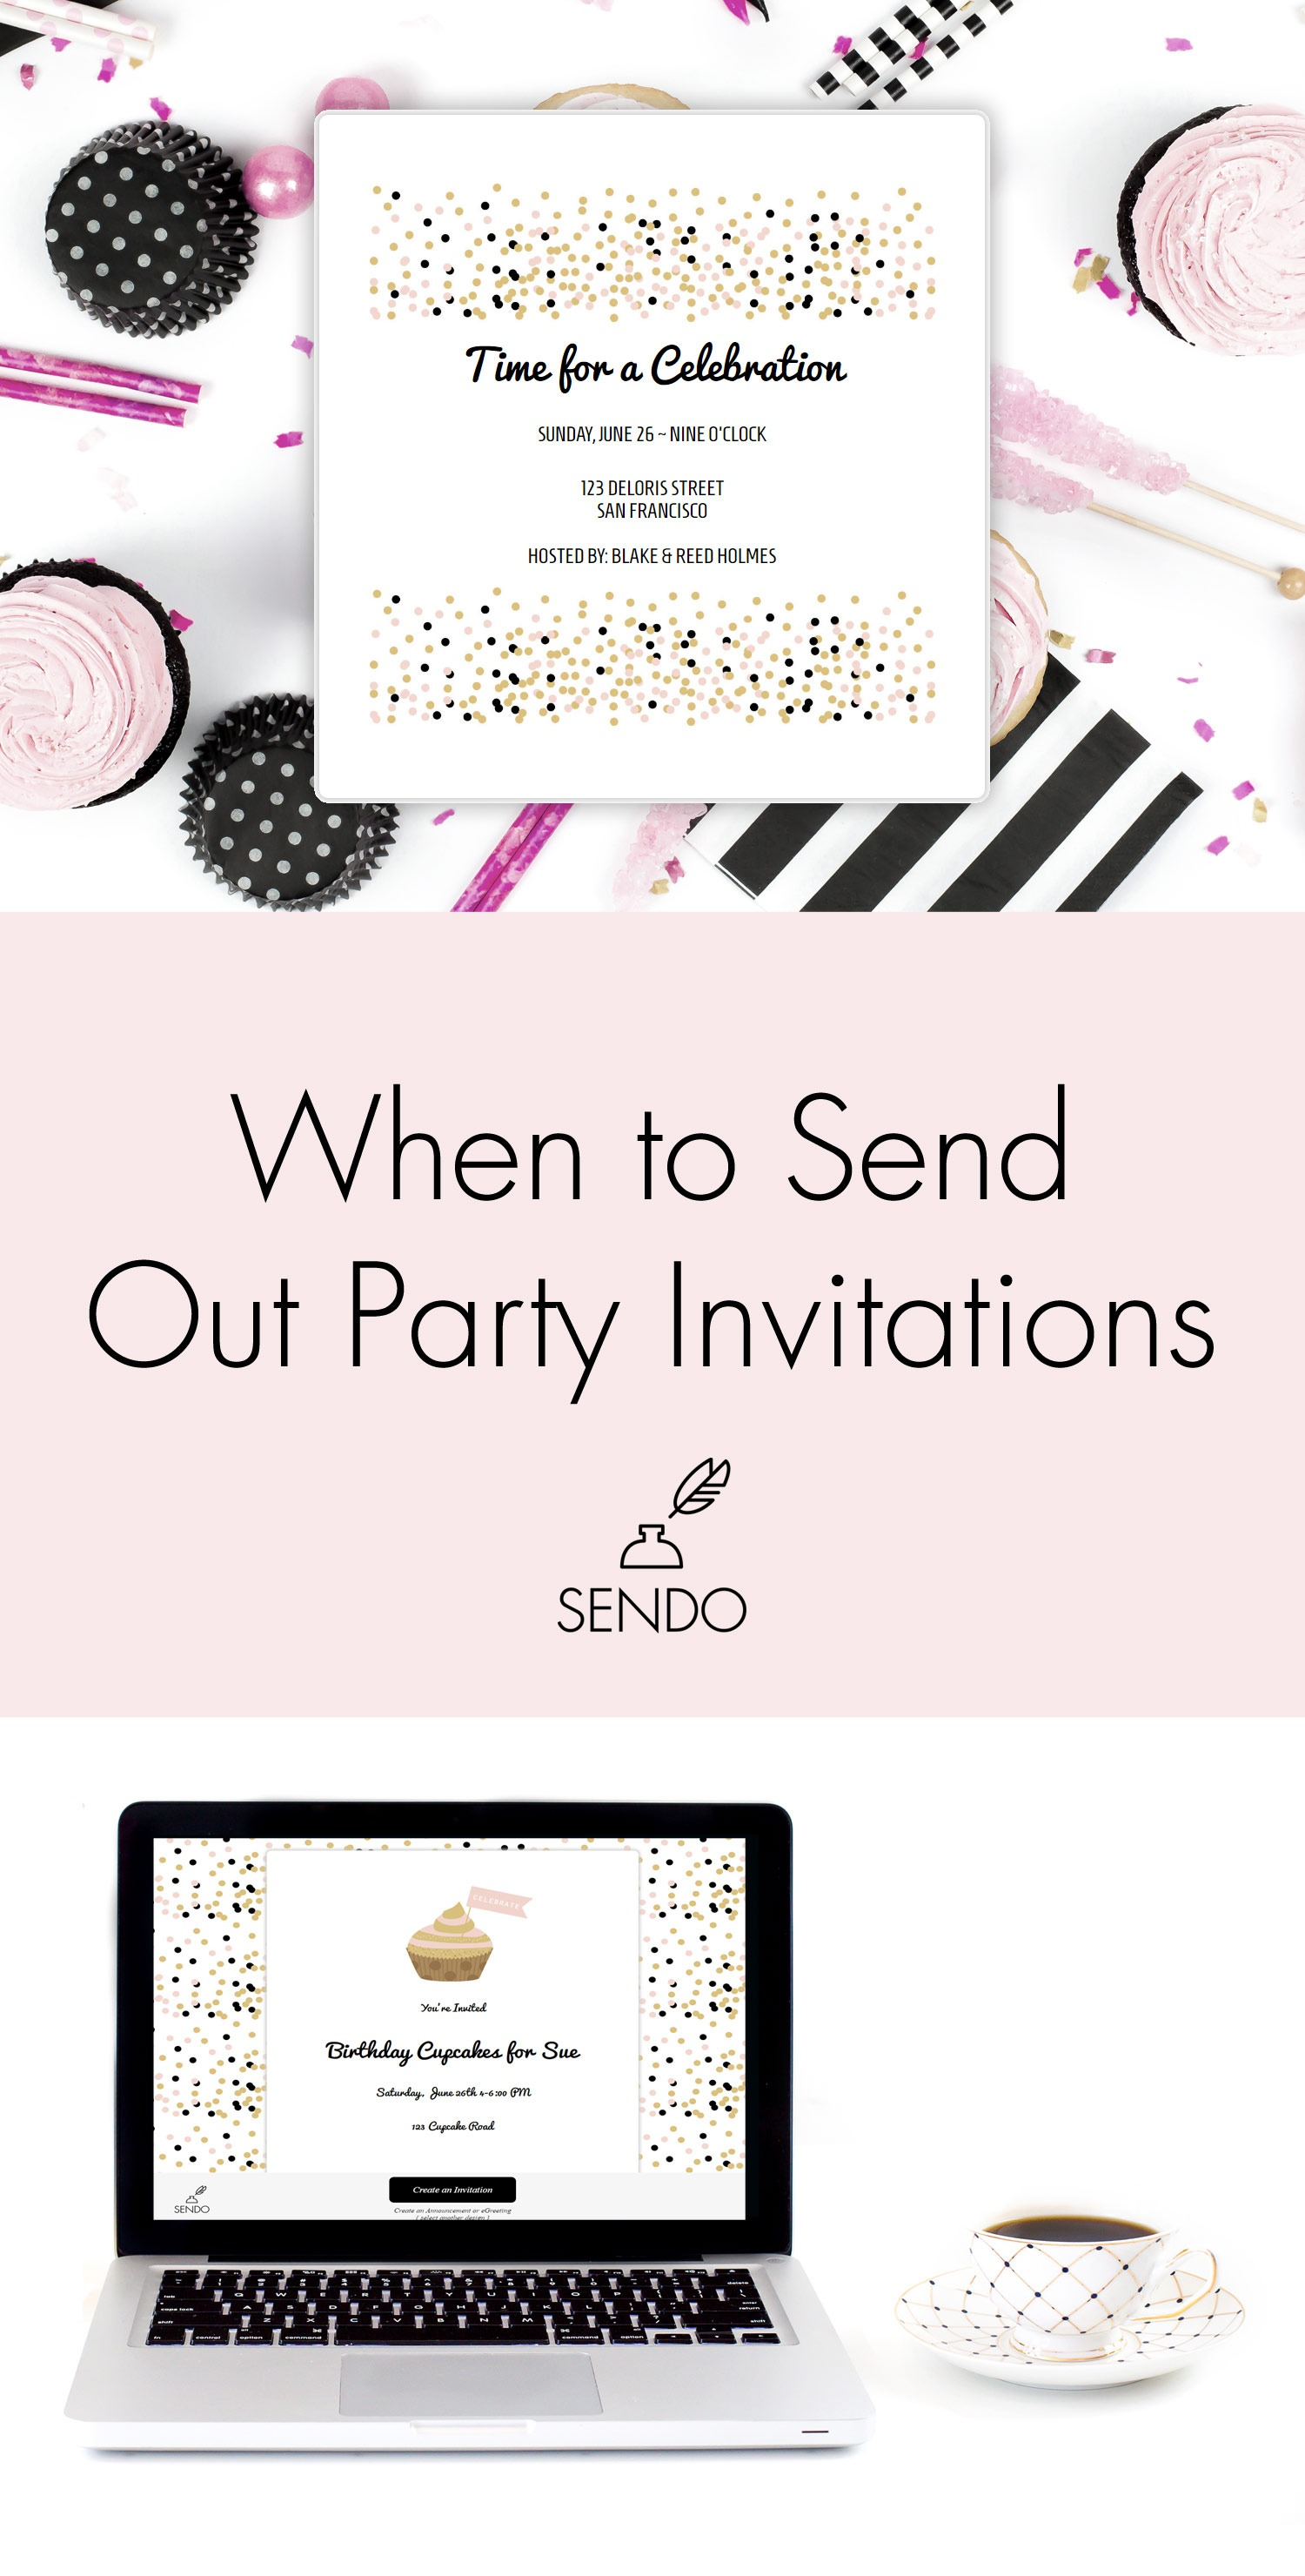 When to send out Party Invitations - when is the right timing? Read more here #partyinvitations #invitations #sendomatic #partyprofs #diy #eventplanning